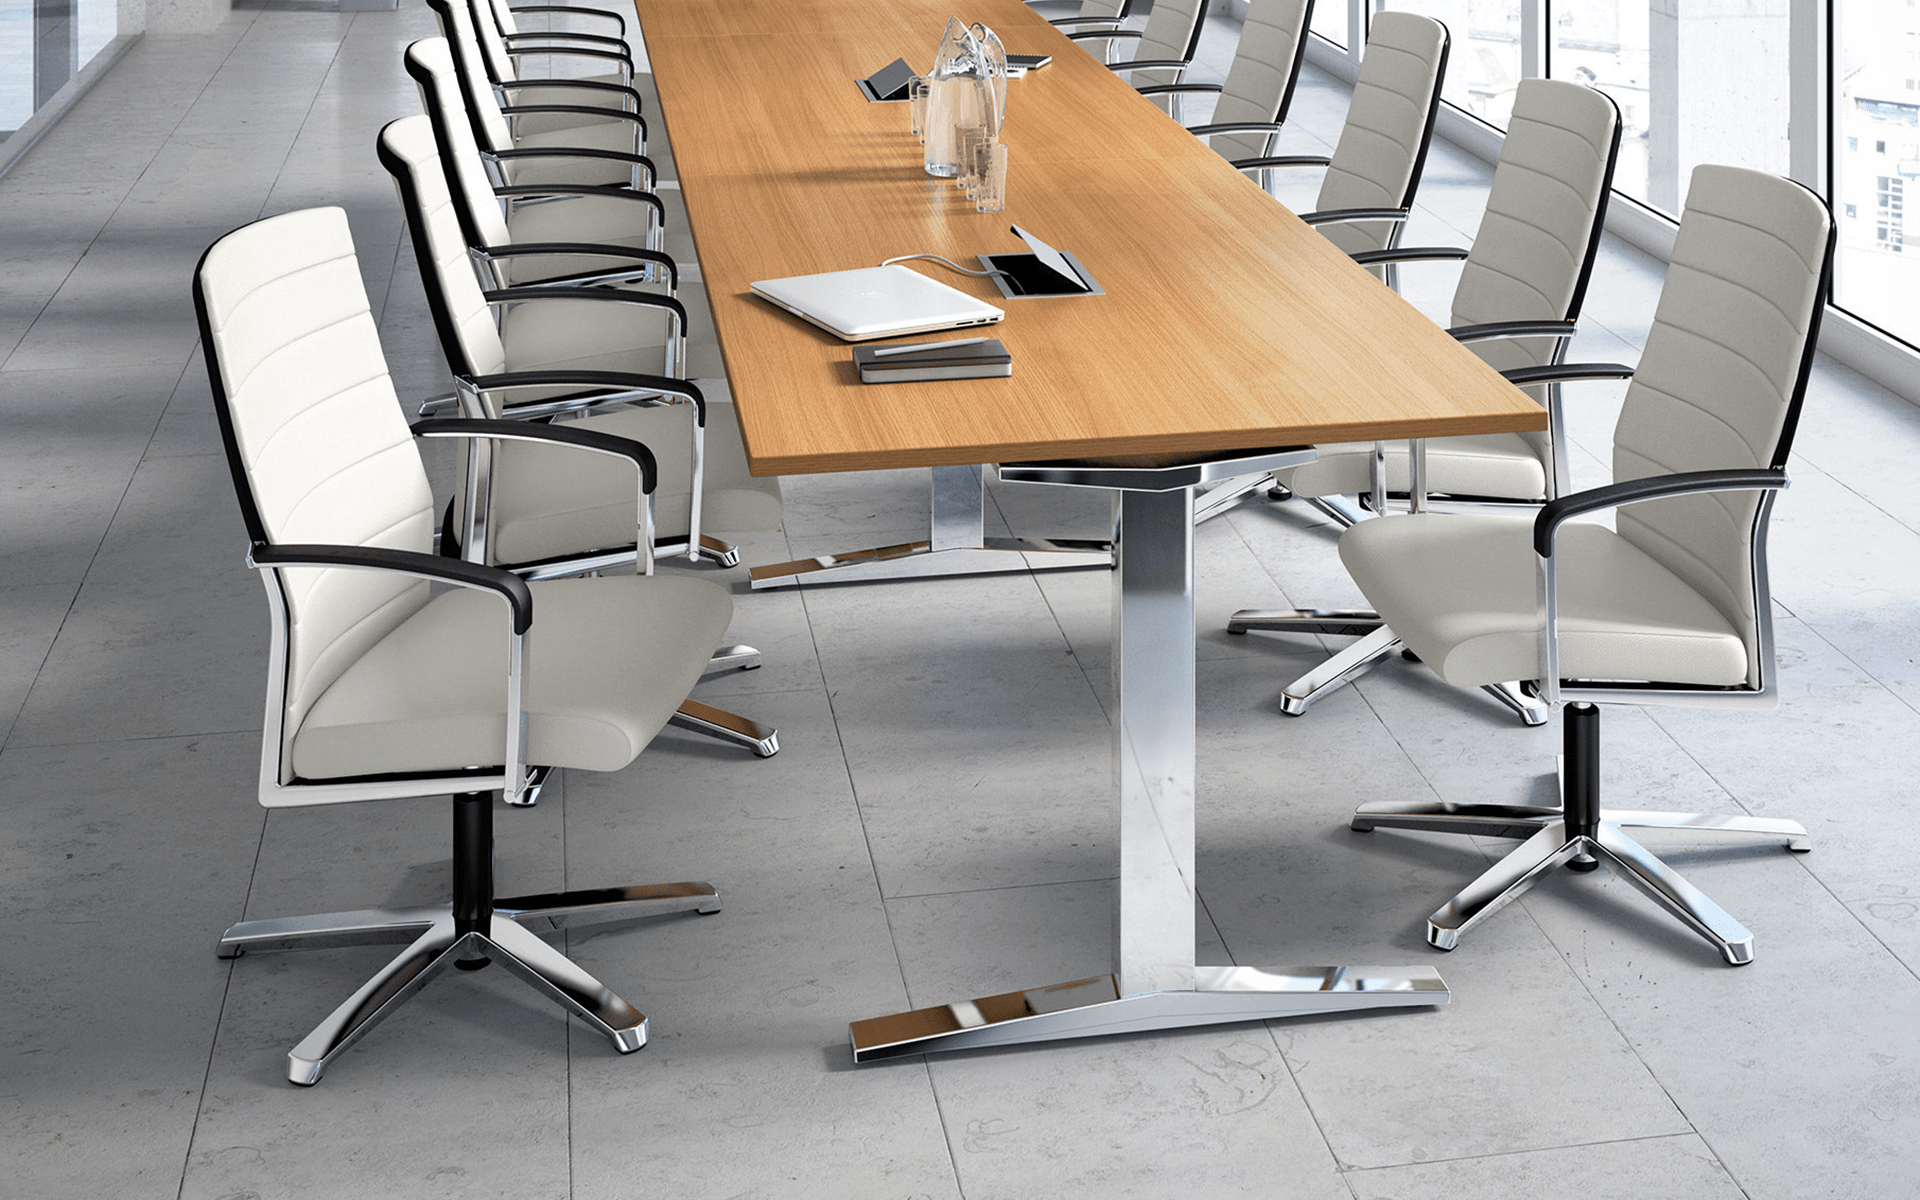 Light-colored K+N Agenda conference chairs by ITO Design in light-flooded conference room